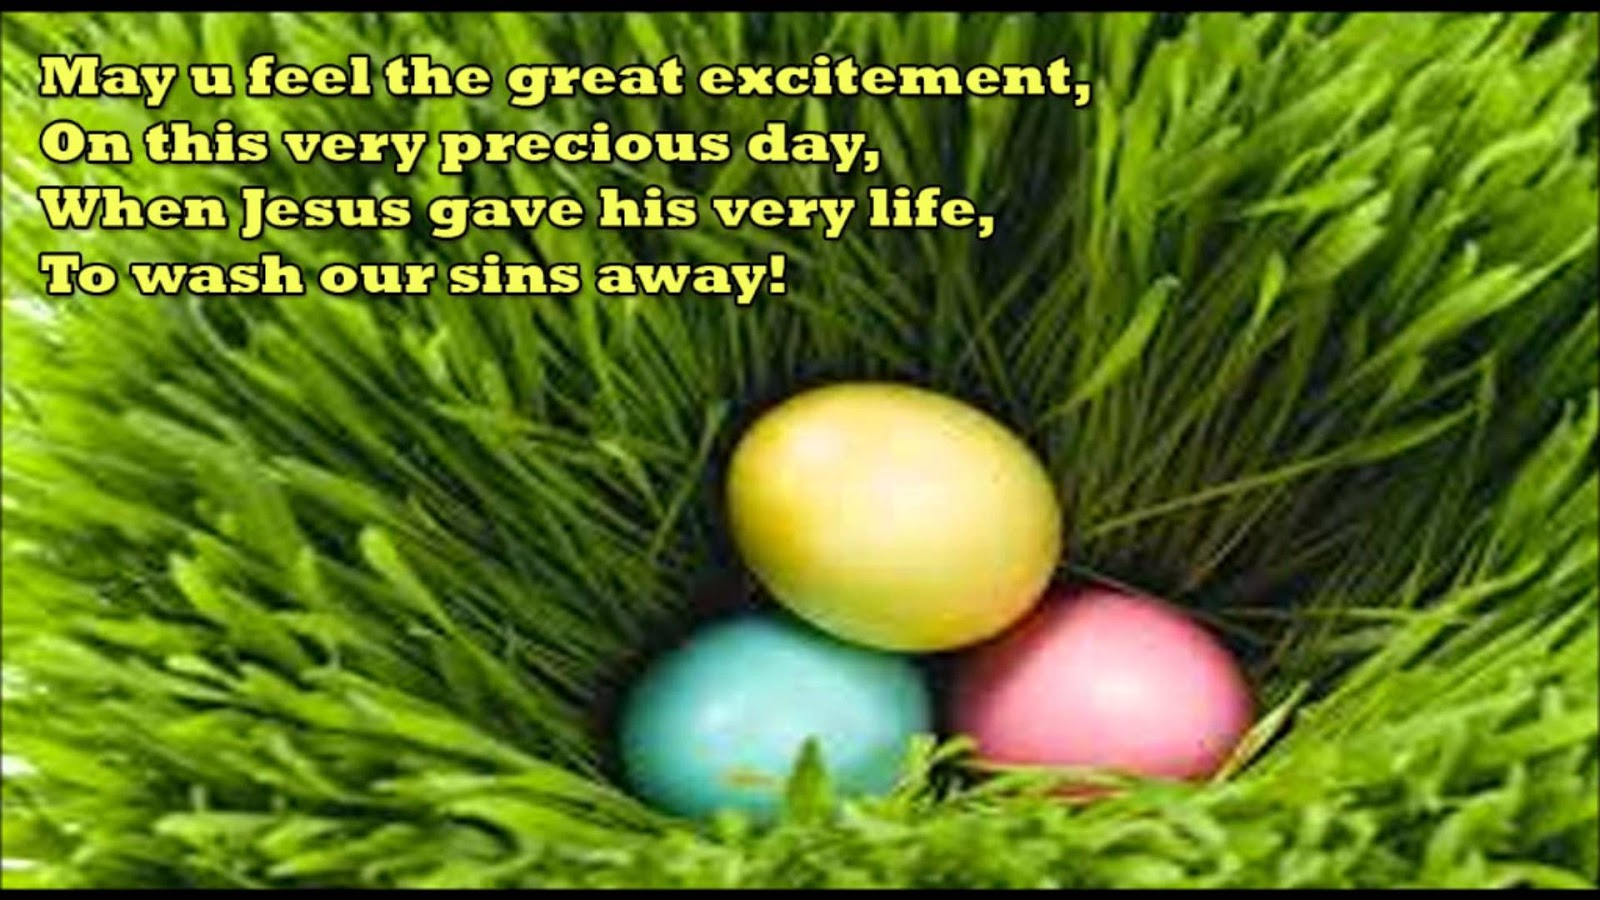 Best happy easter 2016 wishes greetings sms cards friendship day best happy easter 2016 wishes greetings sms cards friendship day 2016 wishes sms quotes images wallpapers pictures pics kristyandbryce Images